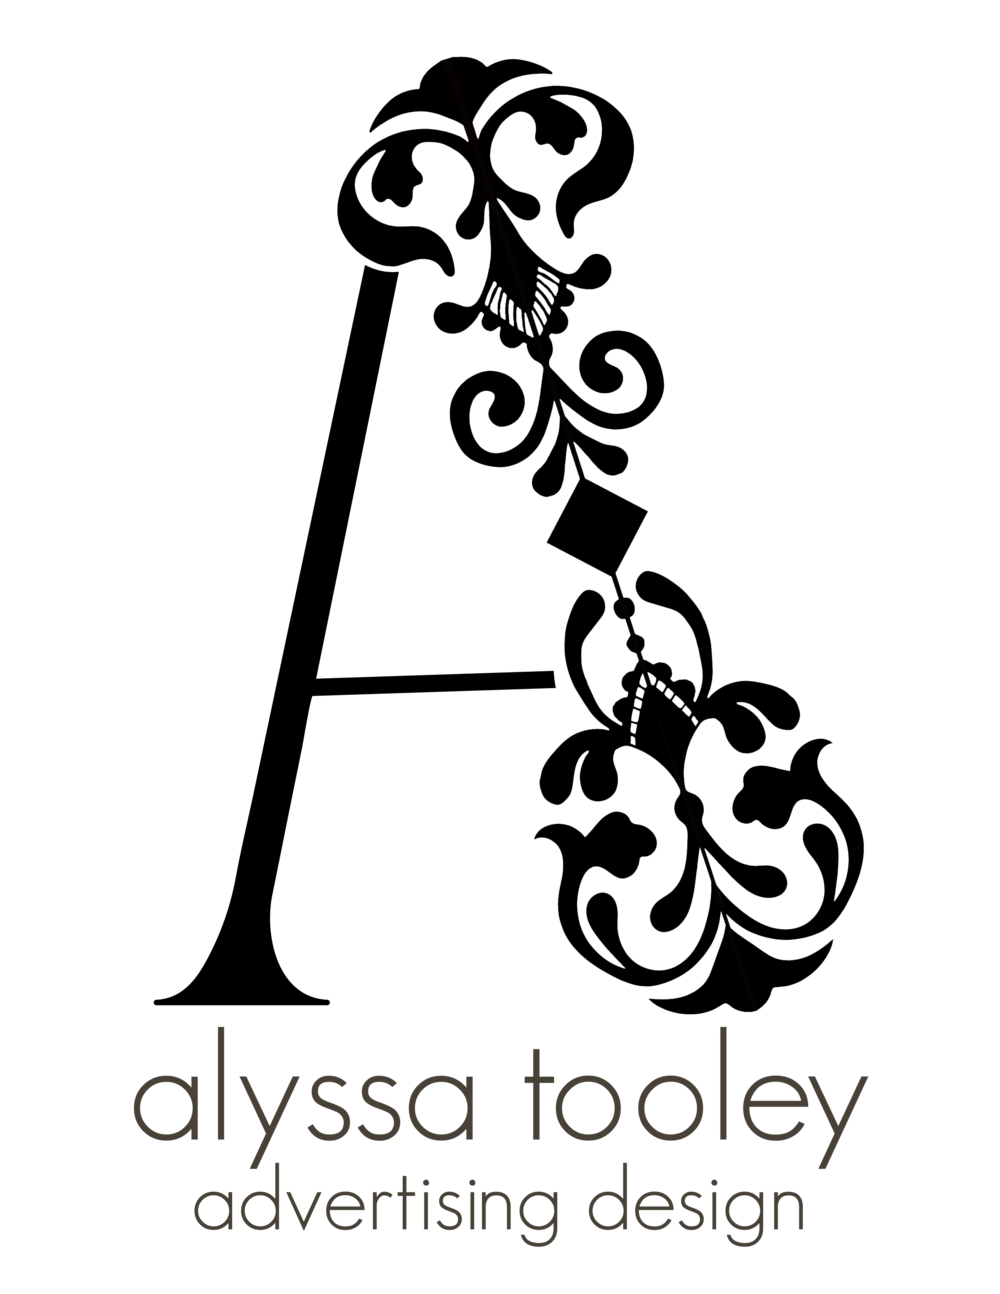 alyssa tooley